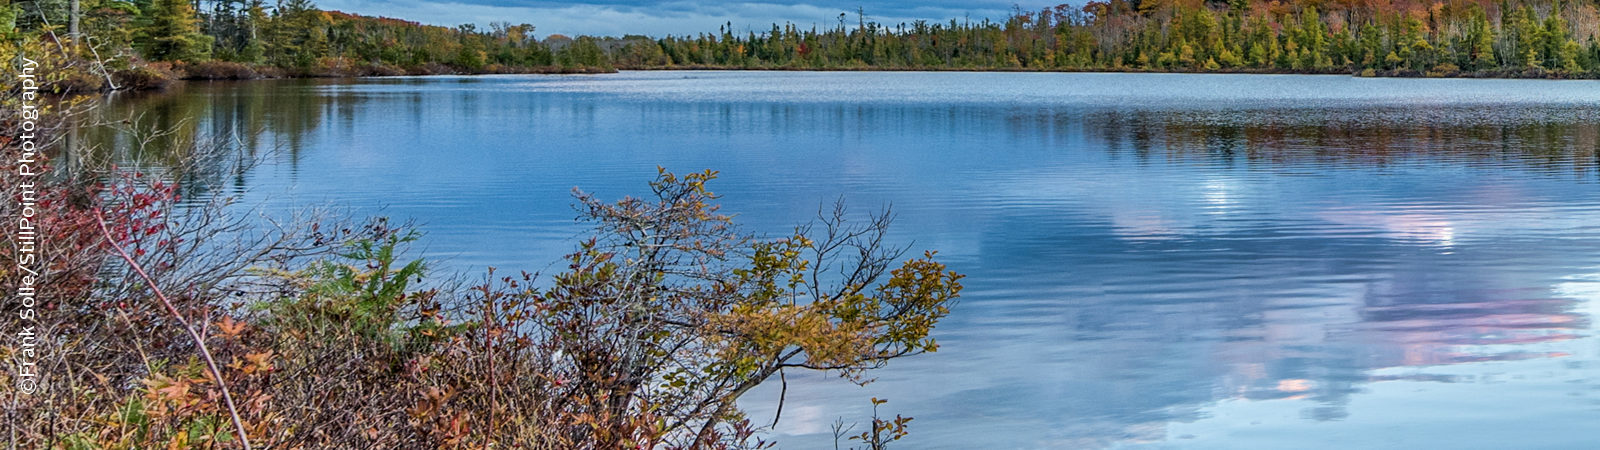 ©Frank Solle/StillPoint Photography Egg lake Islands Summit